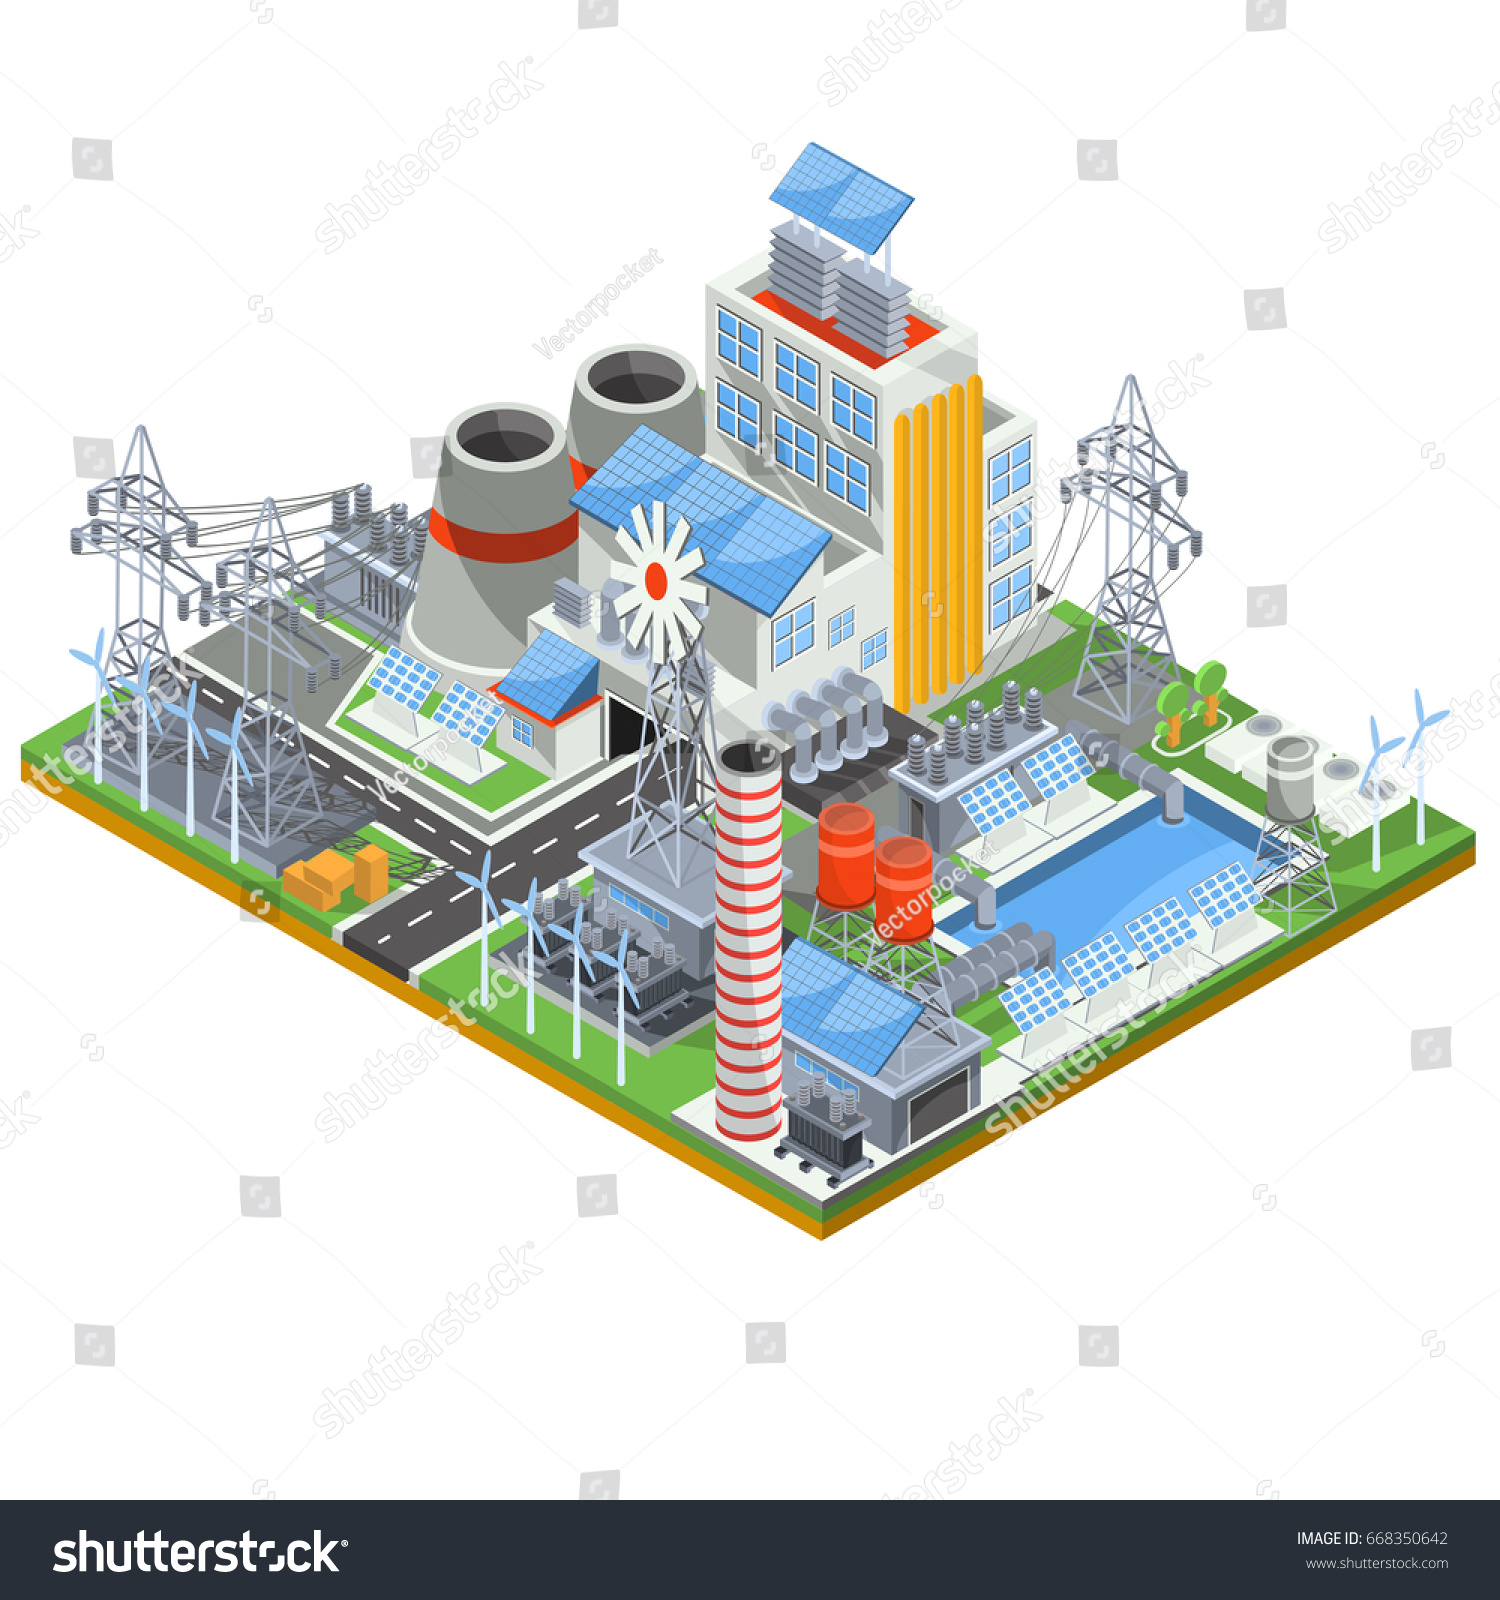 Isometric illustration of a thermal thermal power plant running on  alternative sources of energy. The